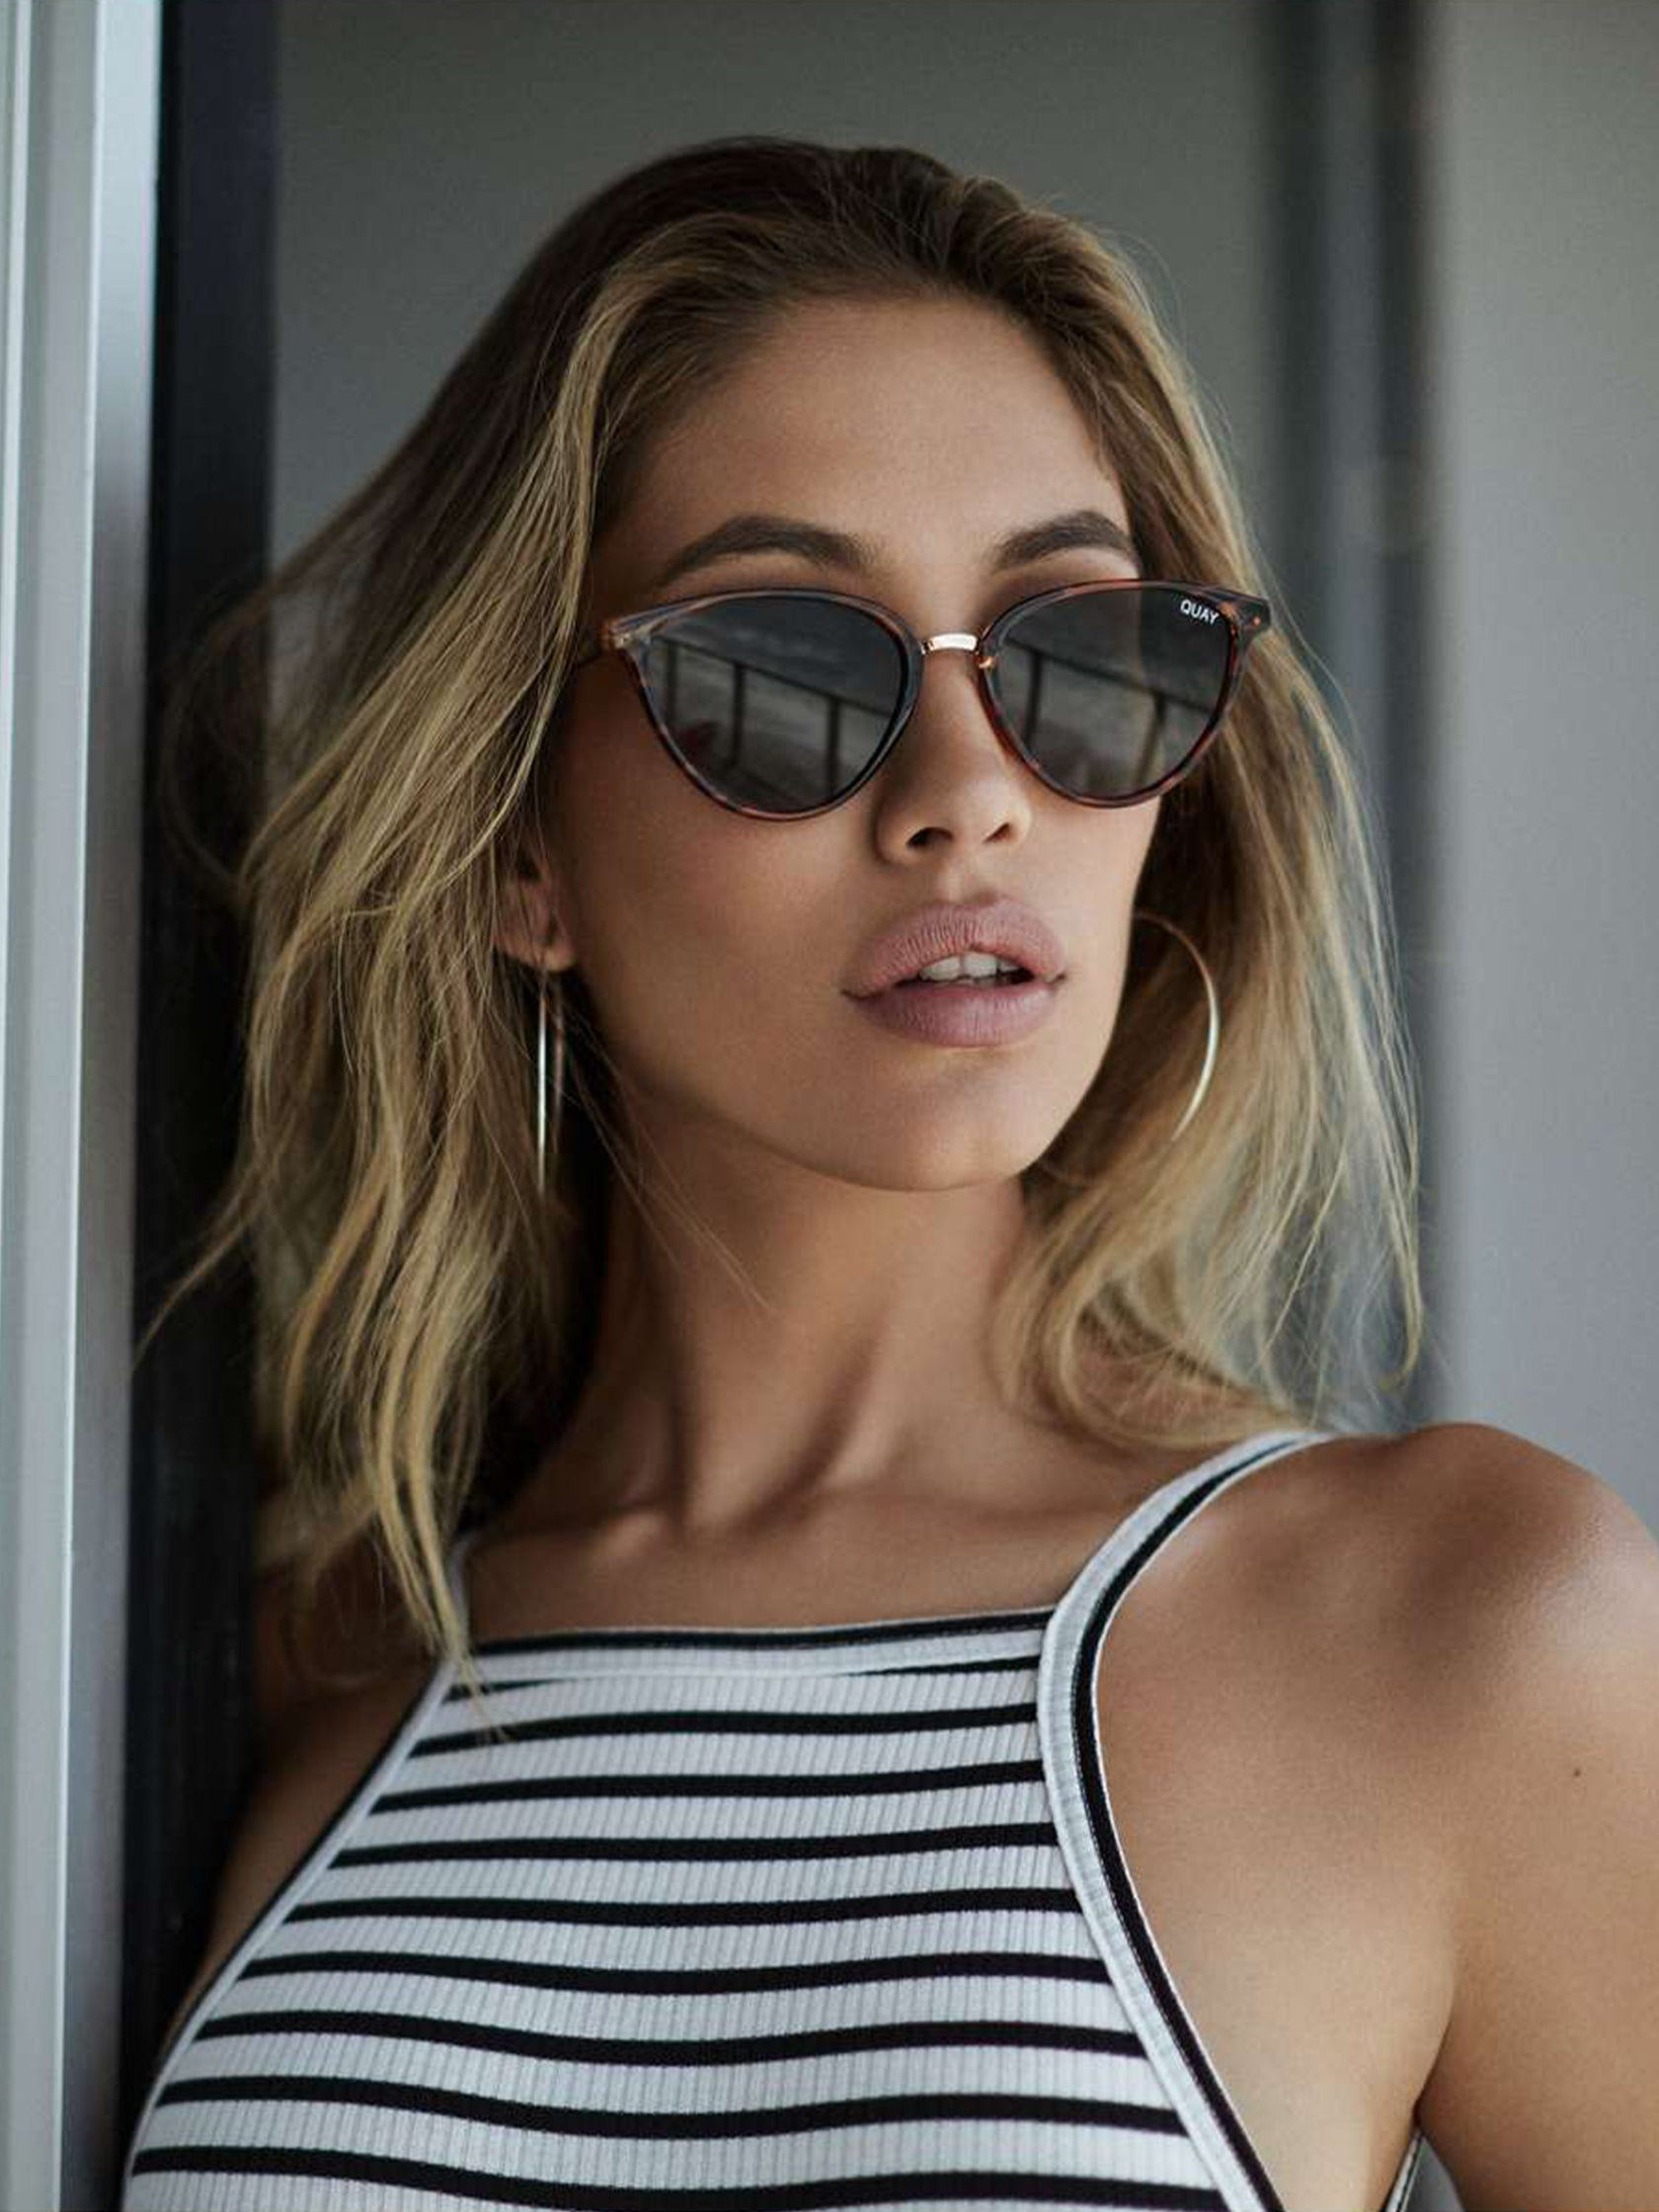 Women wearing a sunglasses rental from Quay Australia called Rumours 57mm Sunglasses